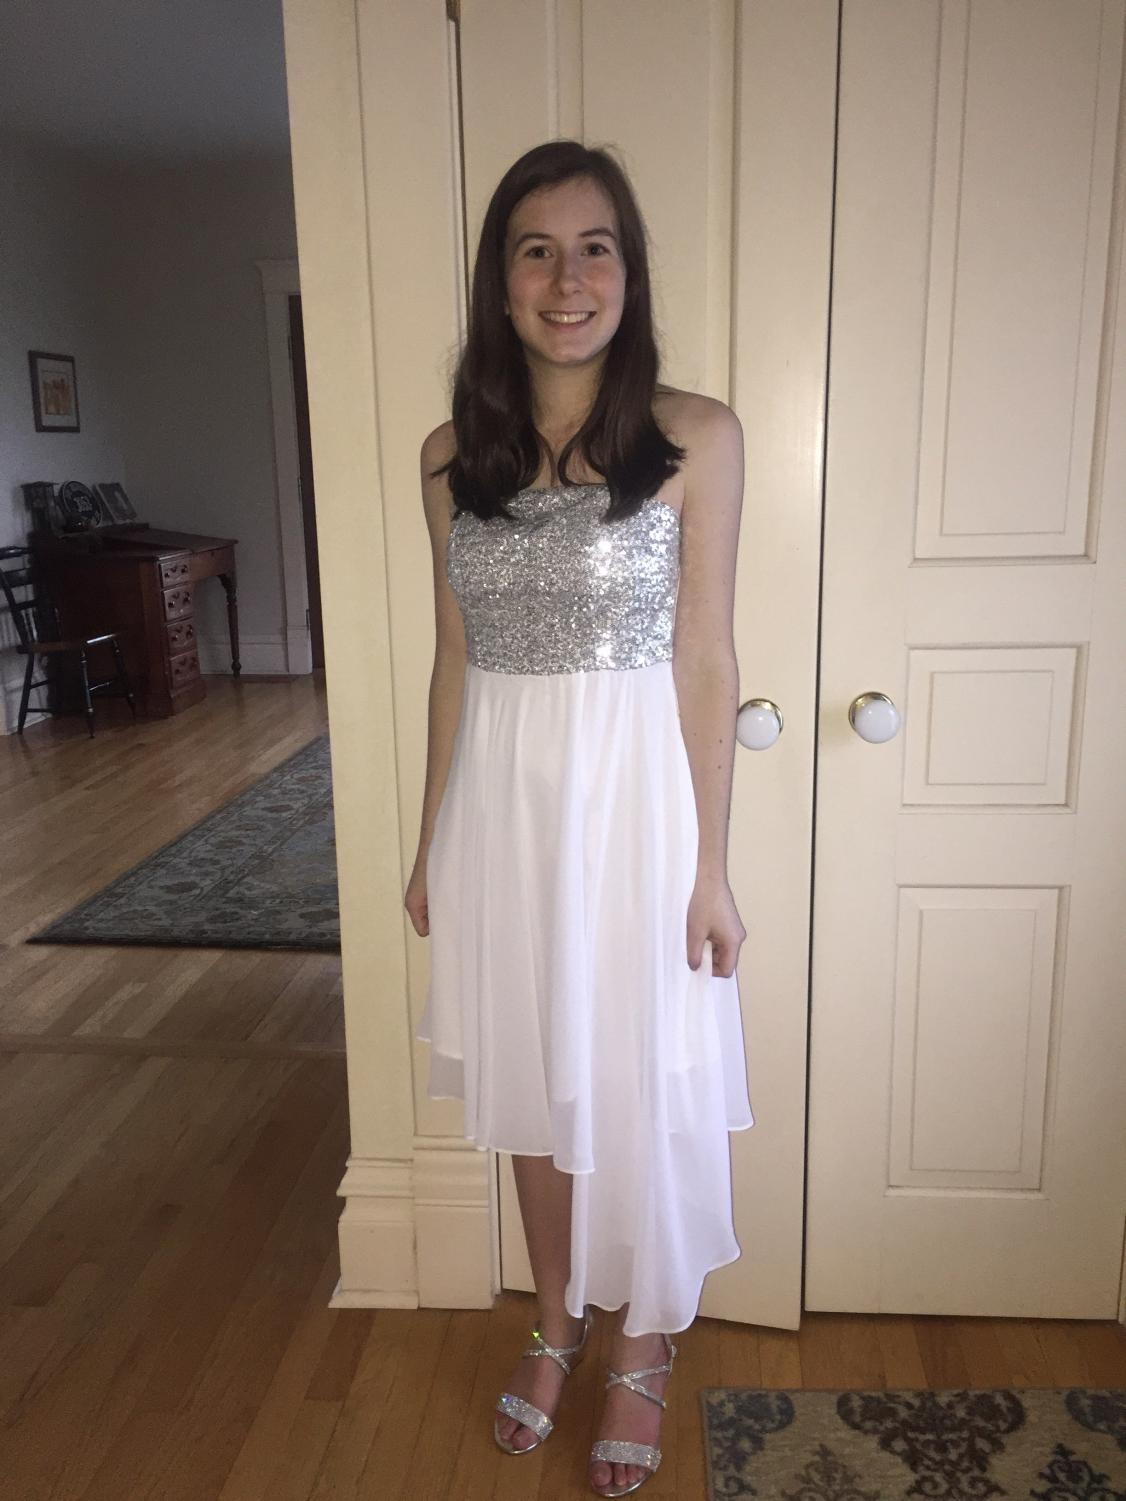 Eight grade Maia DeGrazia '20 poses in her eight grade formal dress, the same one her mother was tailoring when she realized her shoulders weren't aligned.